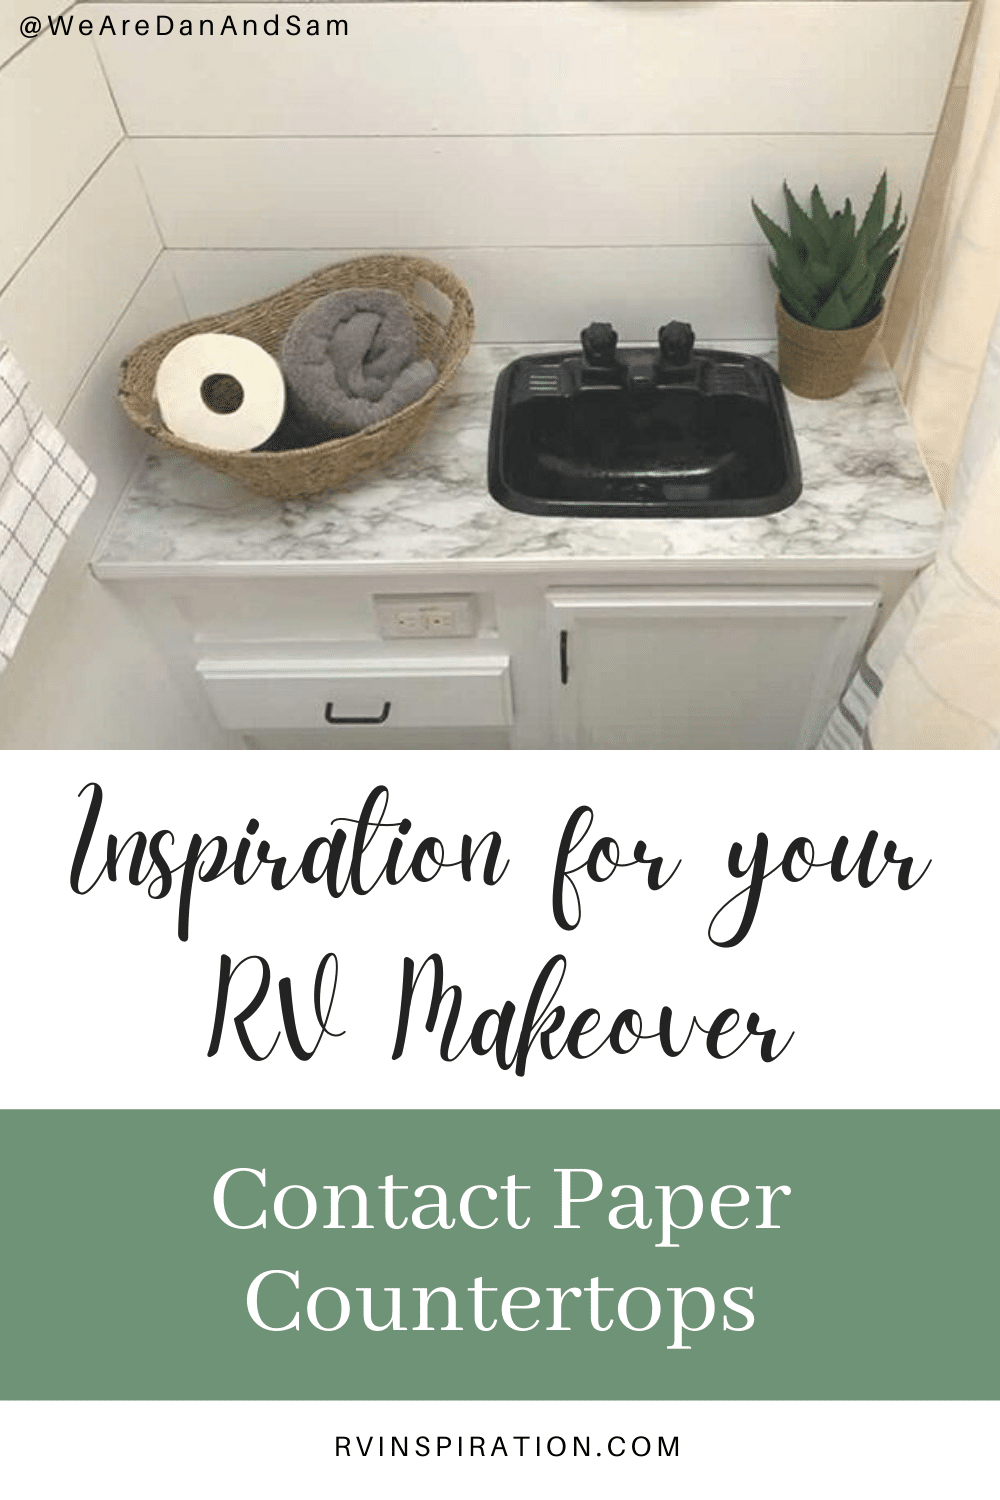 Give your RV countertops a makeover with this cheap and easy idea! #RVcountertops #RVkitchenideas #RVcountertopmakeover #RVkitchenmakeover